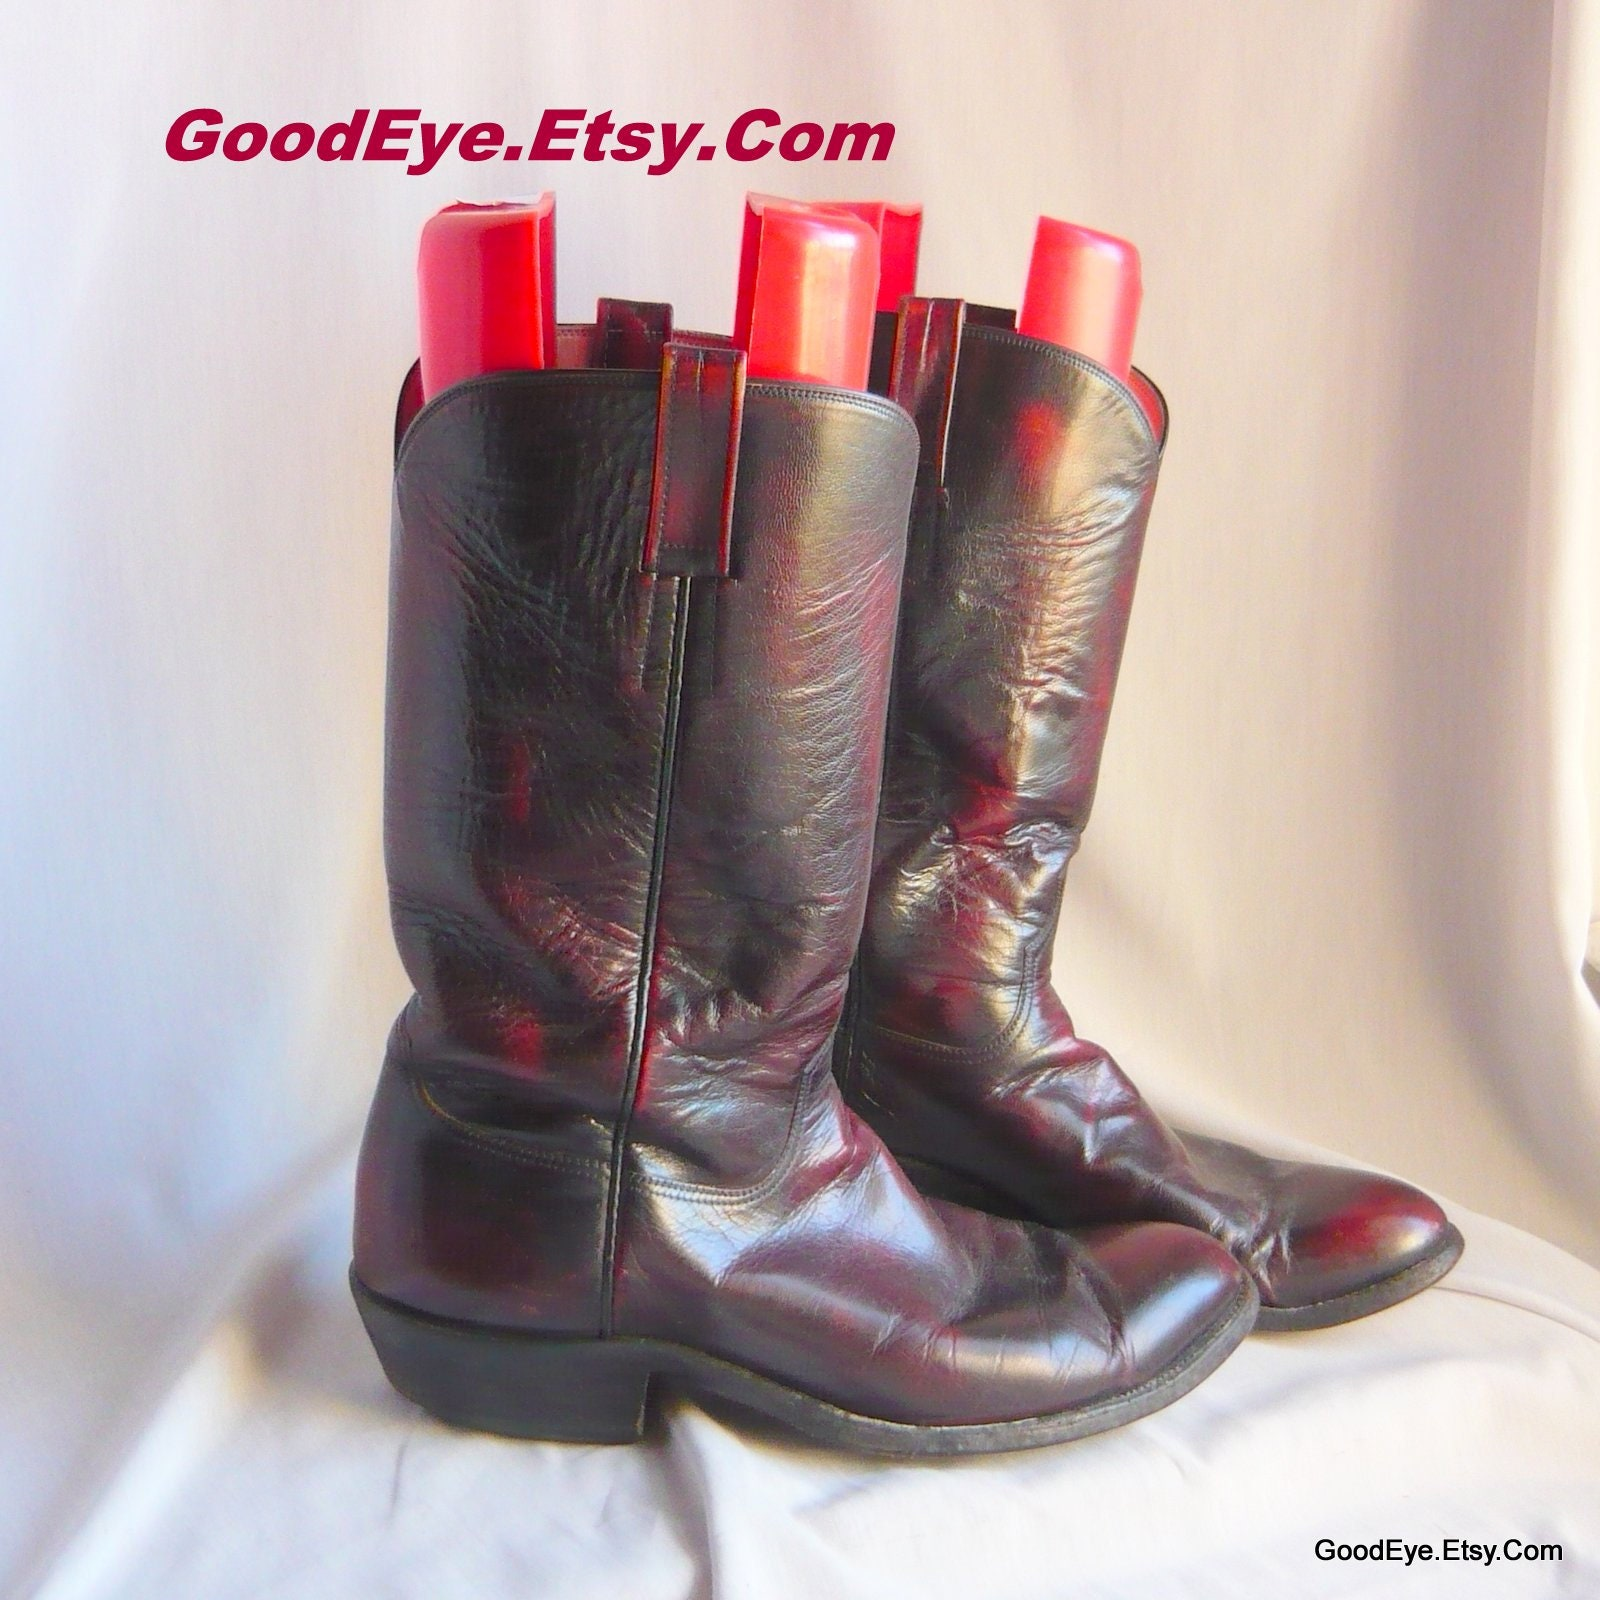 a895245ccd7 Vintage Cowboy Boots Custom Made / Men size 10.5 11 D Eu 44 UK 10 / Western  All LEATHER Ombre Maroon Black / Houston Texas USA